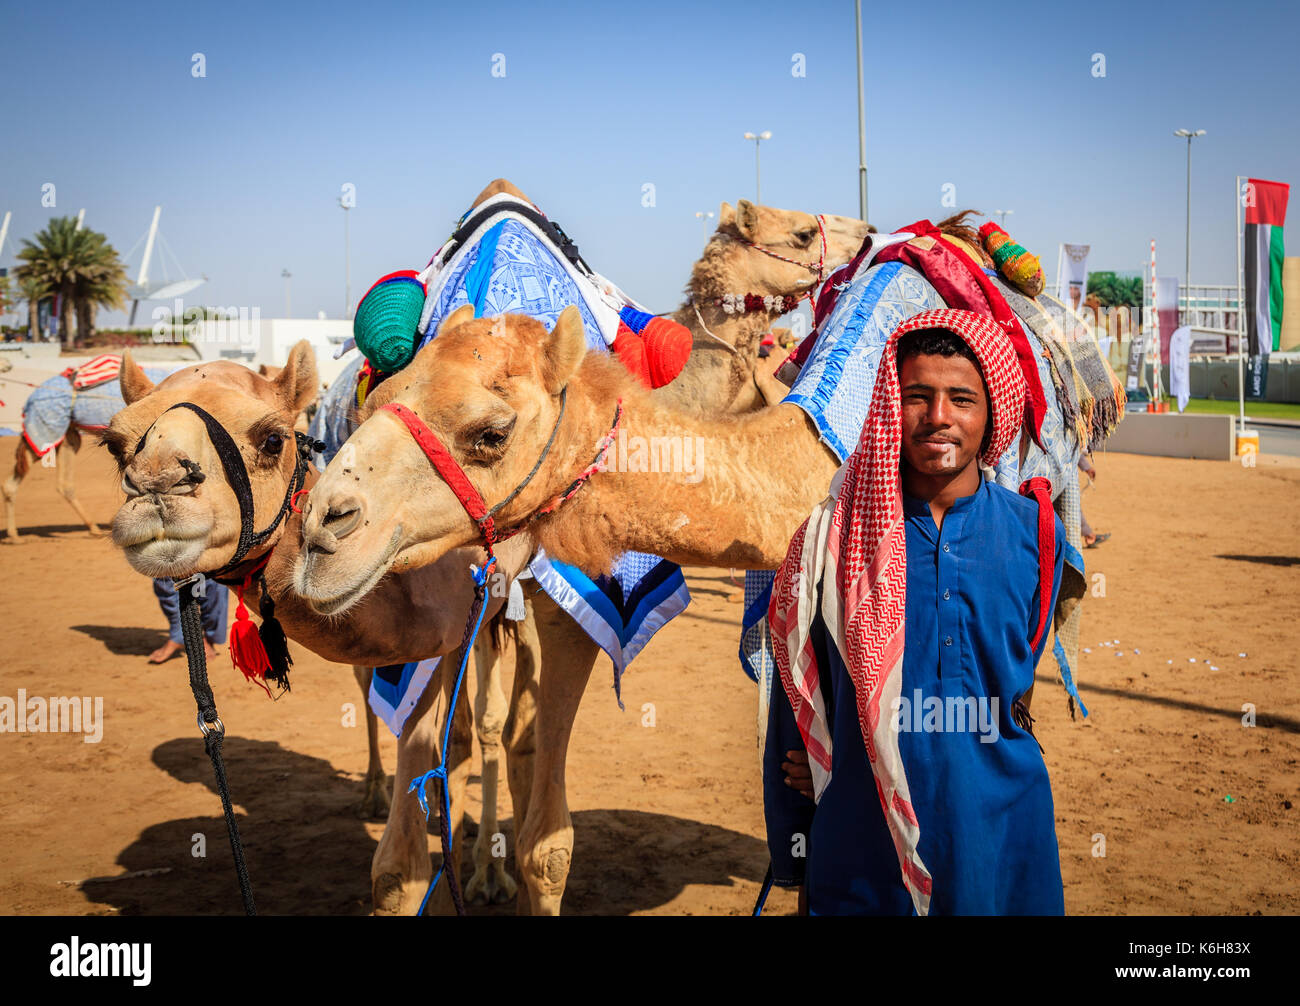 Dubai, United Arab Emirates - March 25, 2016: Camel handler with the animals at Dubai Camel Racing Club - Stock Image